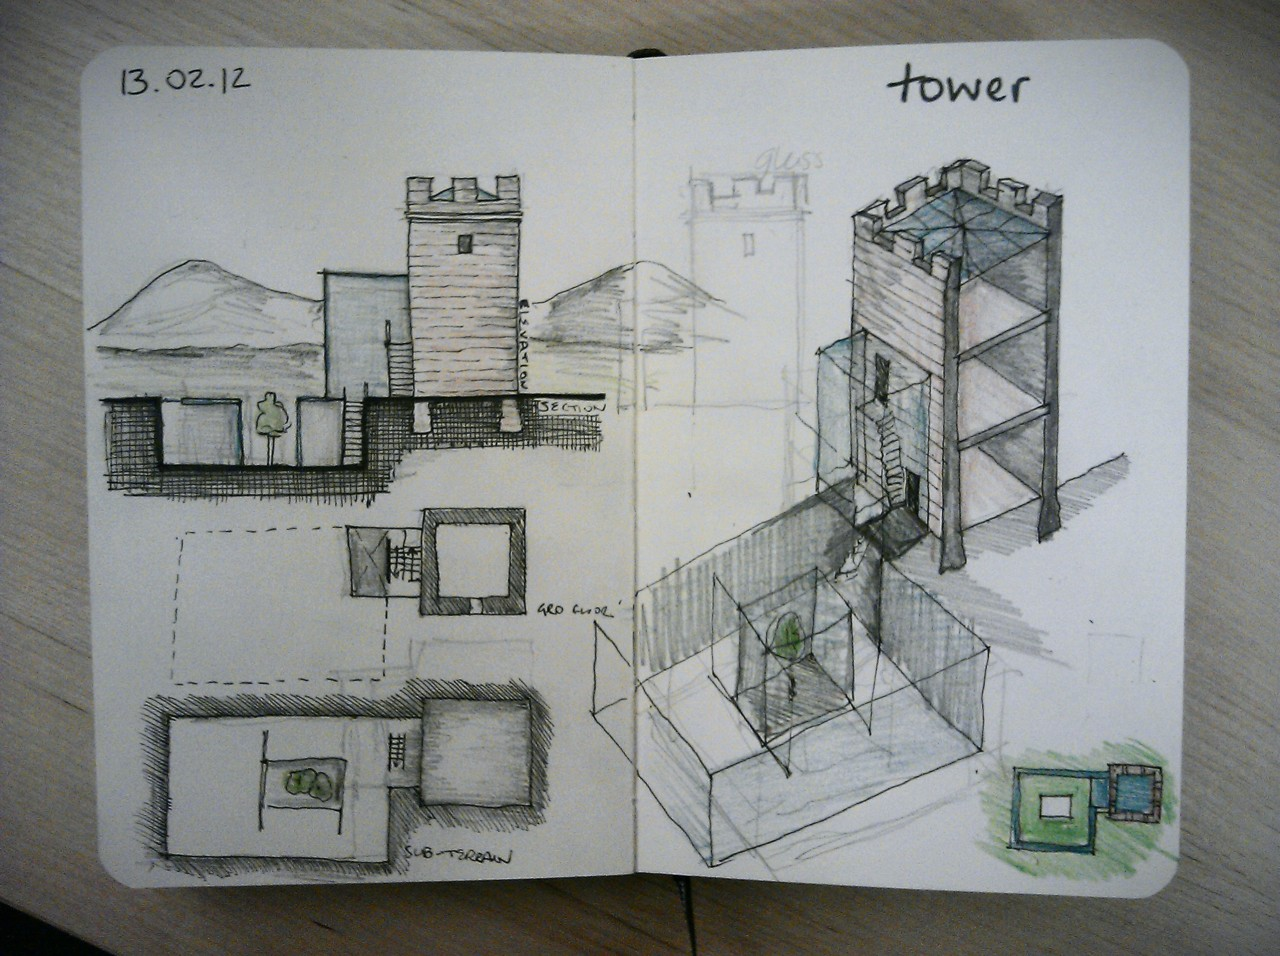 28 drawings later … day 13 … tower (a reaction to that silly tower project on restoration man a couple of weeks ago, its taken me this long to calm down)